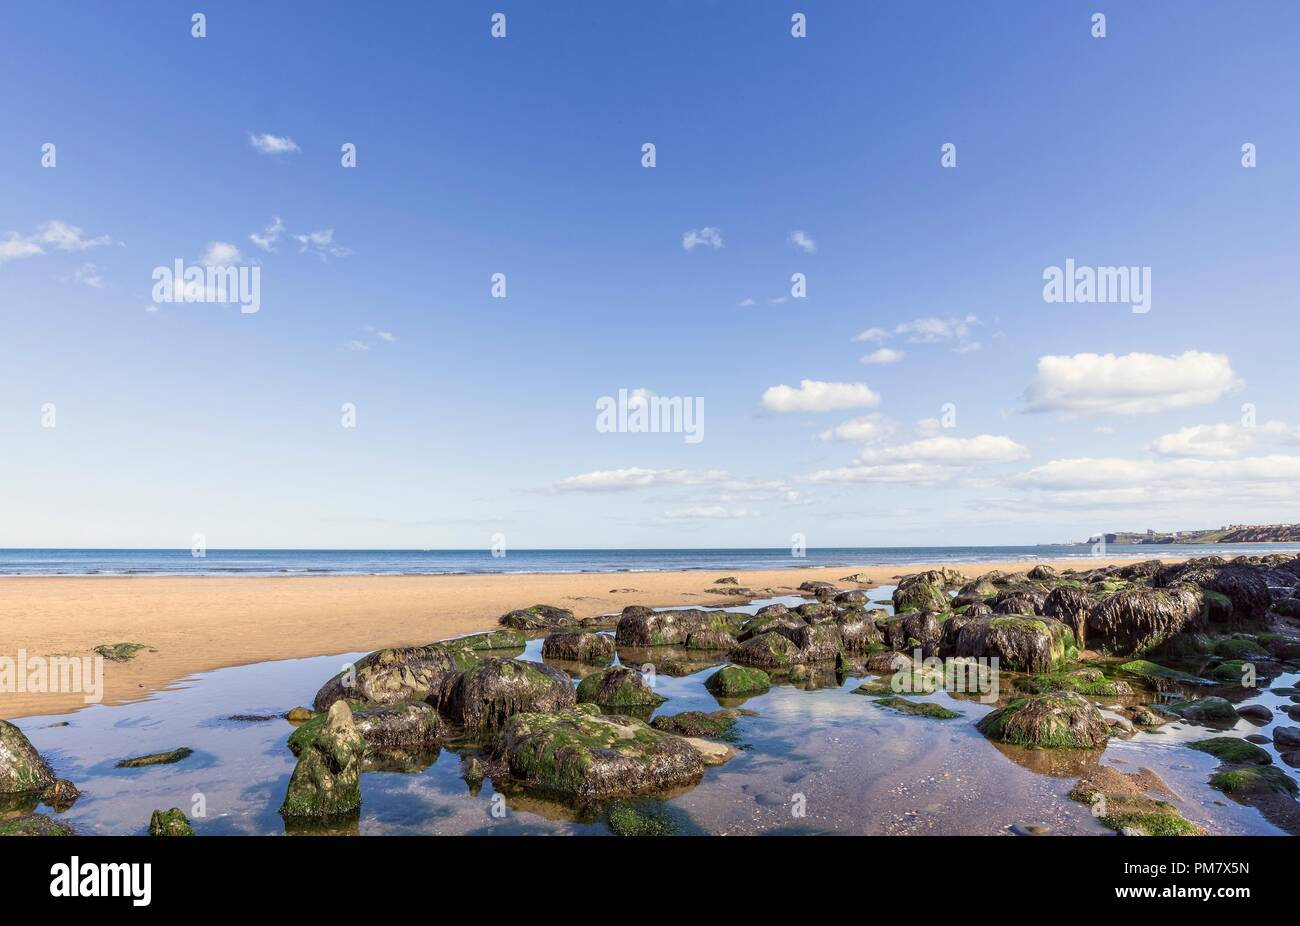 A pool of water with rocks on the beach at Sabdsend.  Whitby can be seen in the distance. Stock Photo